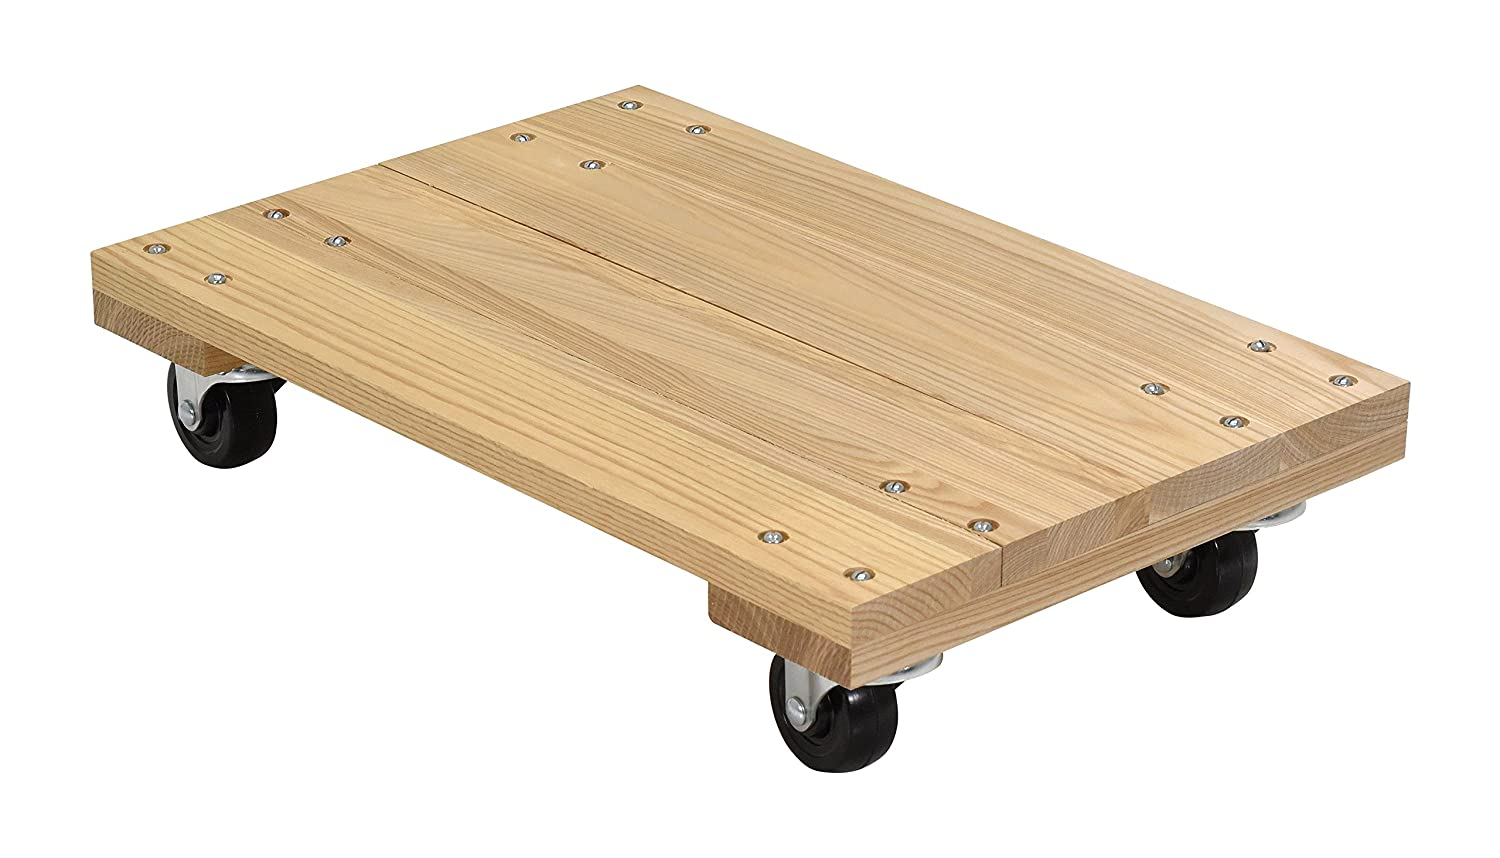 Vestil HDOS-1624-9 Solid Deck Hardwood Dolly with Hard Rubber Casters, 900 lbs Capacity, 24